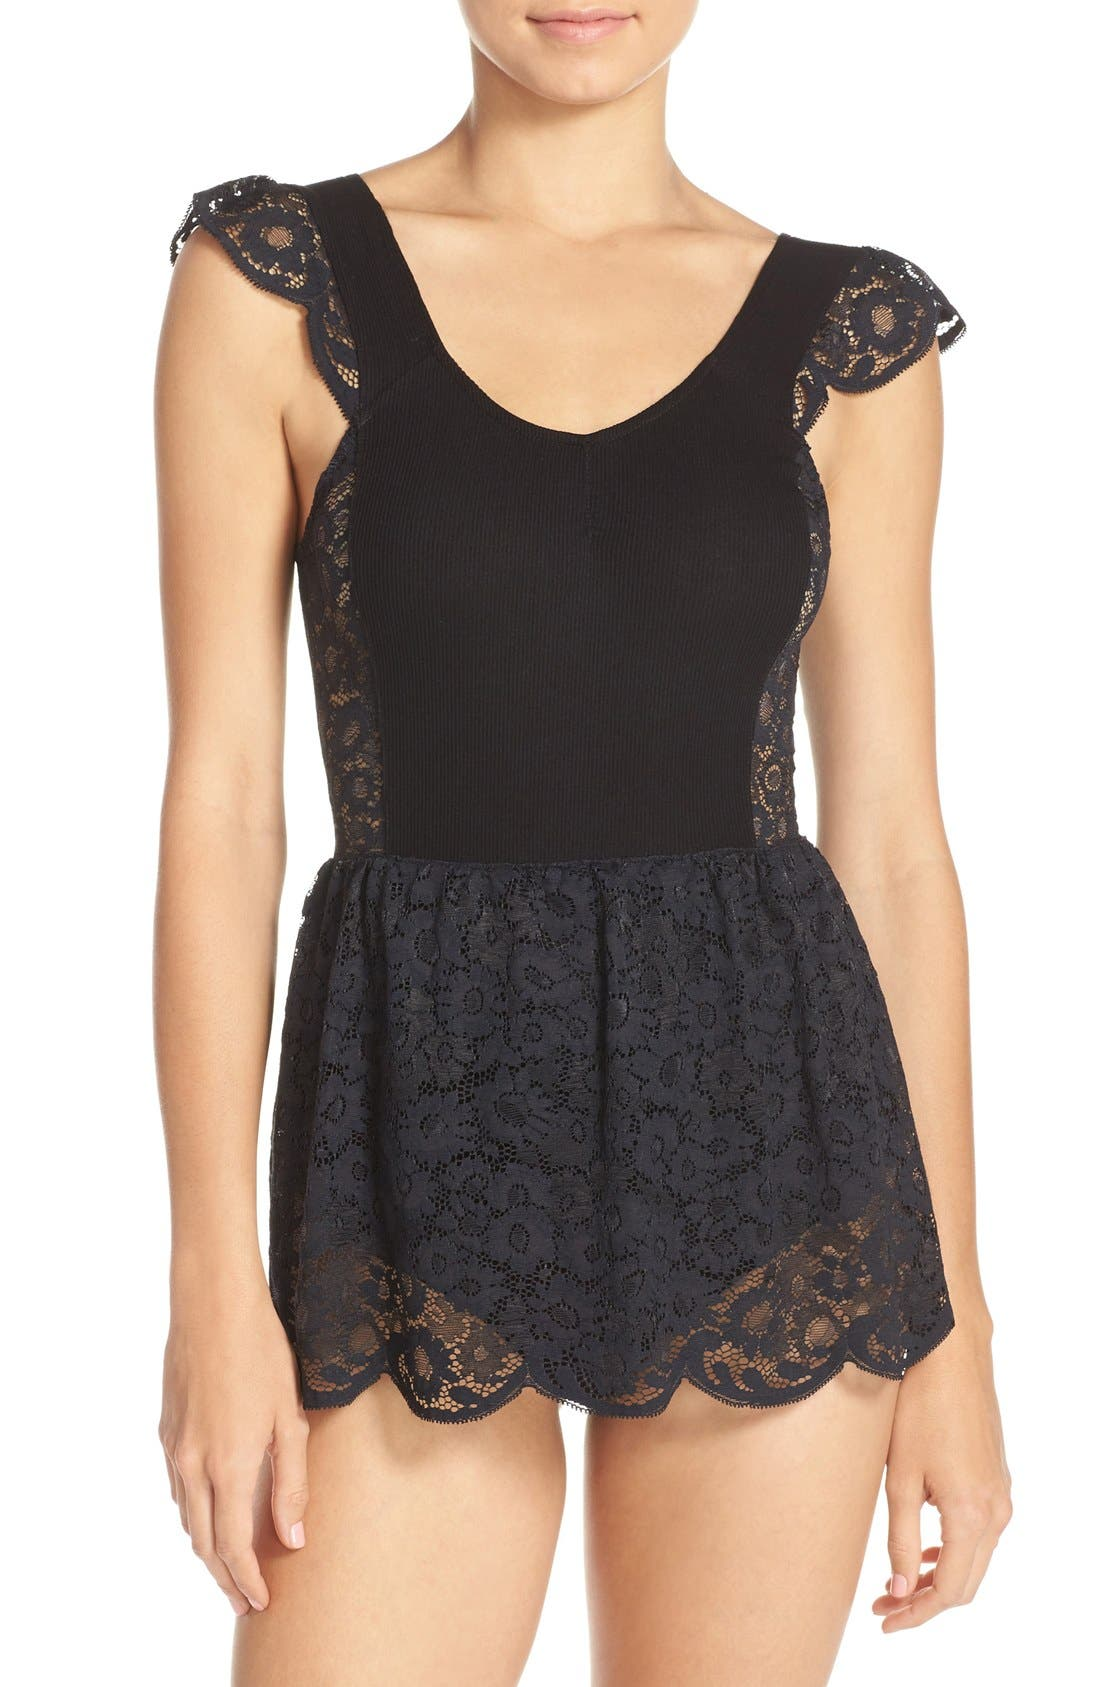 Alternate Image 1 Selected - For Love & Lemons 'Daisy' Lace Skirted Bodysuit